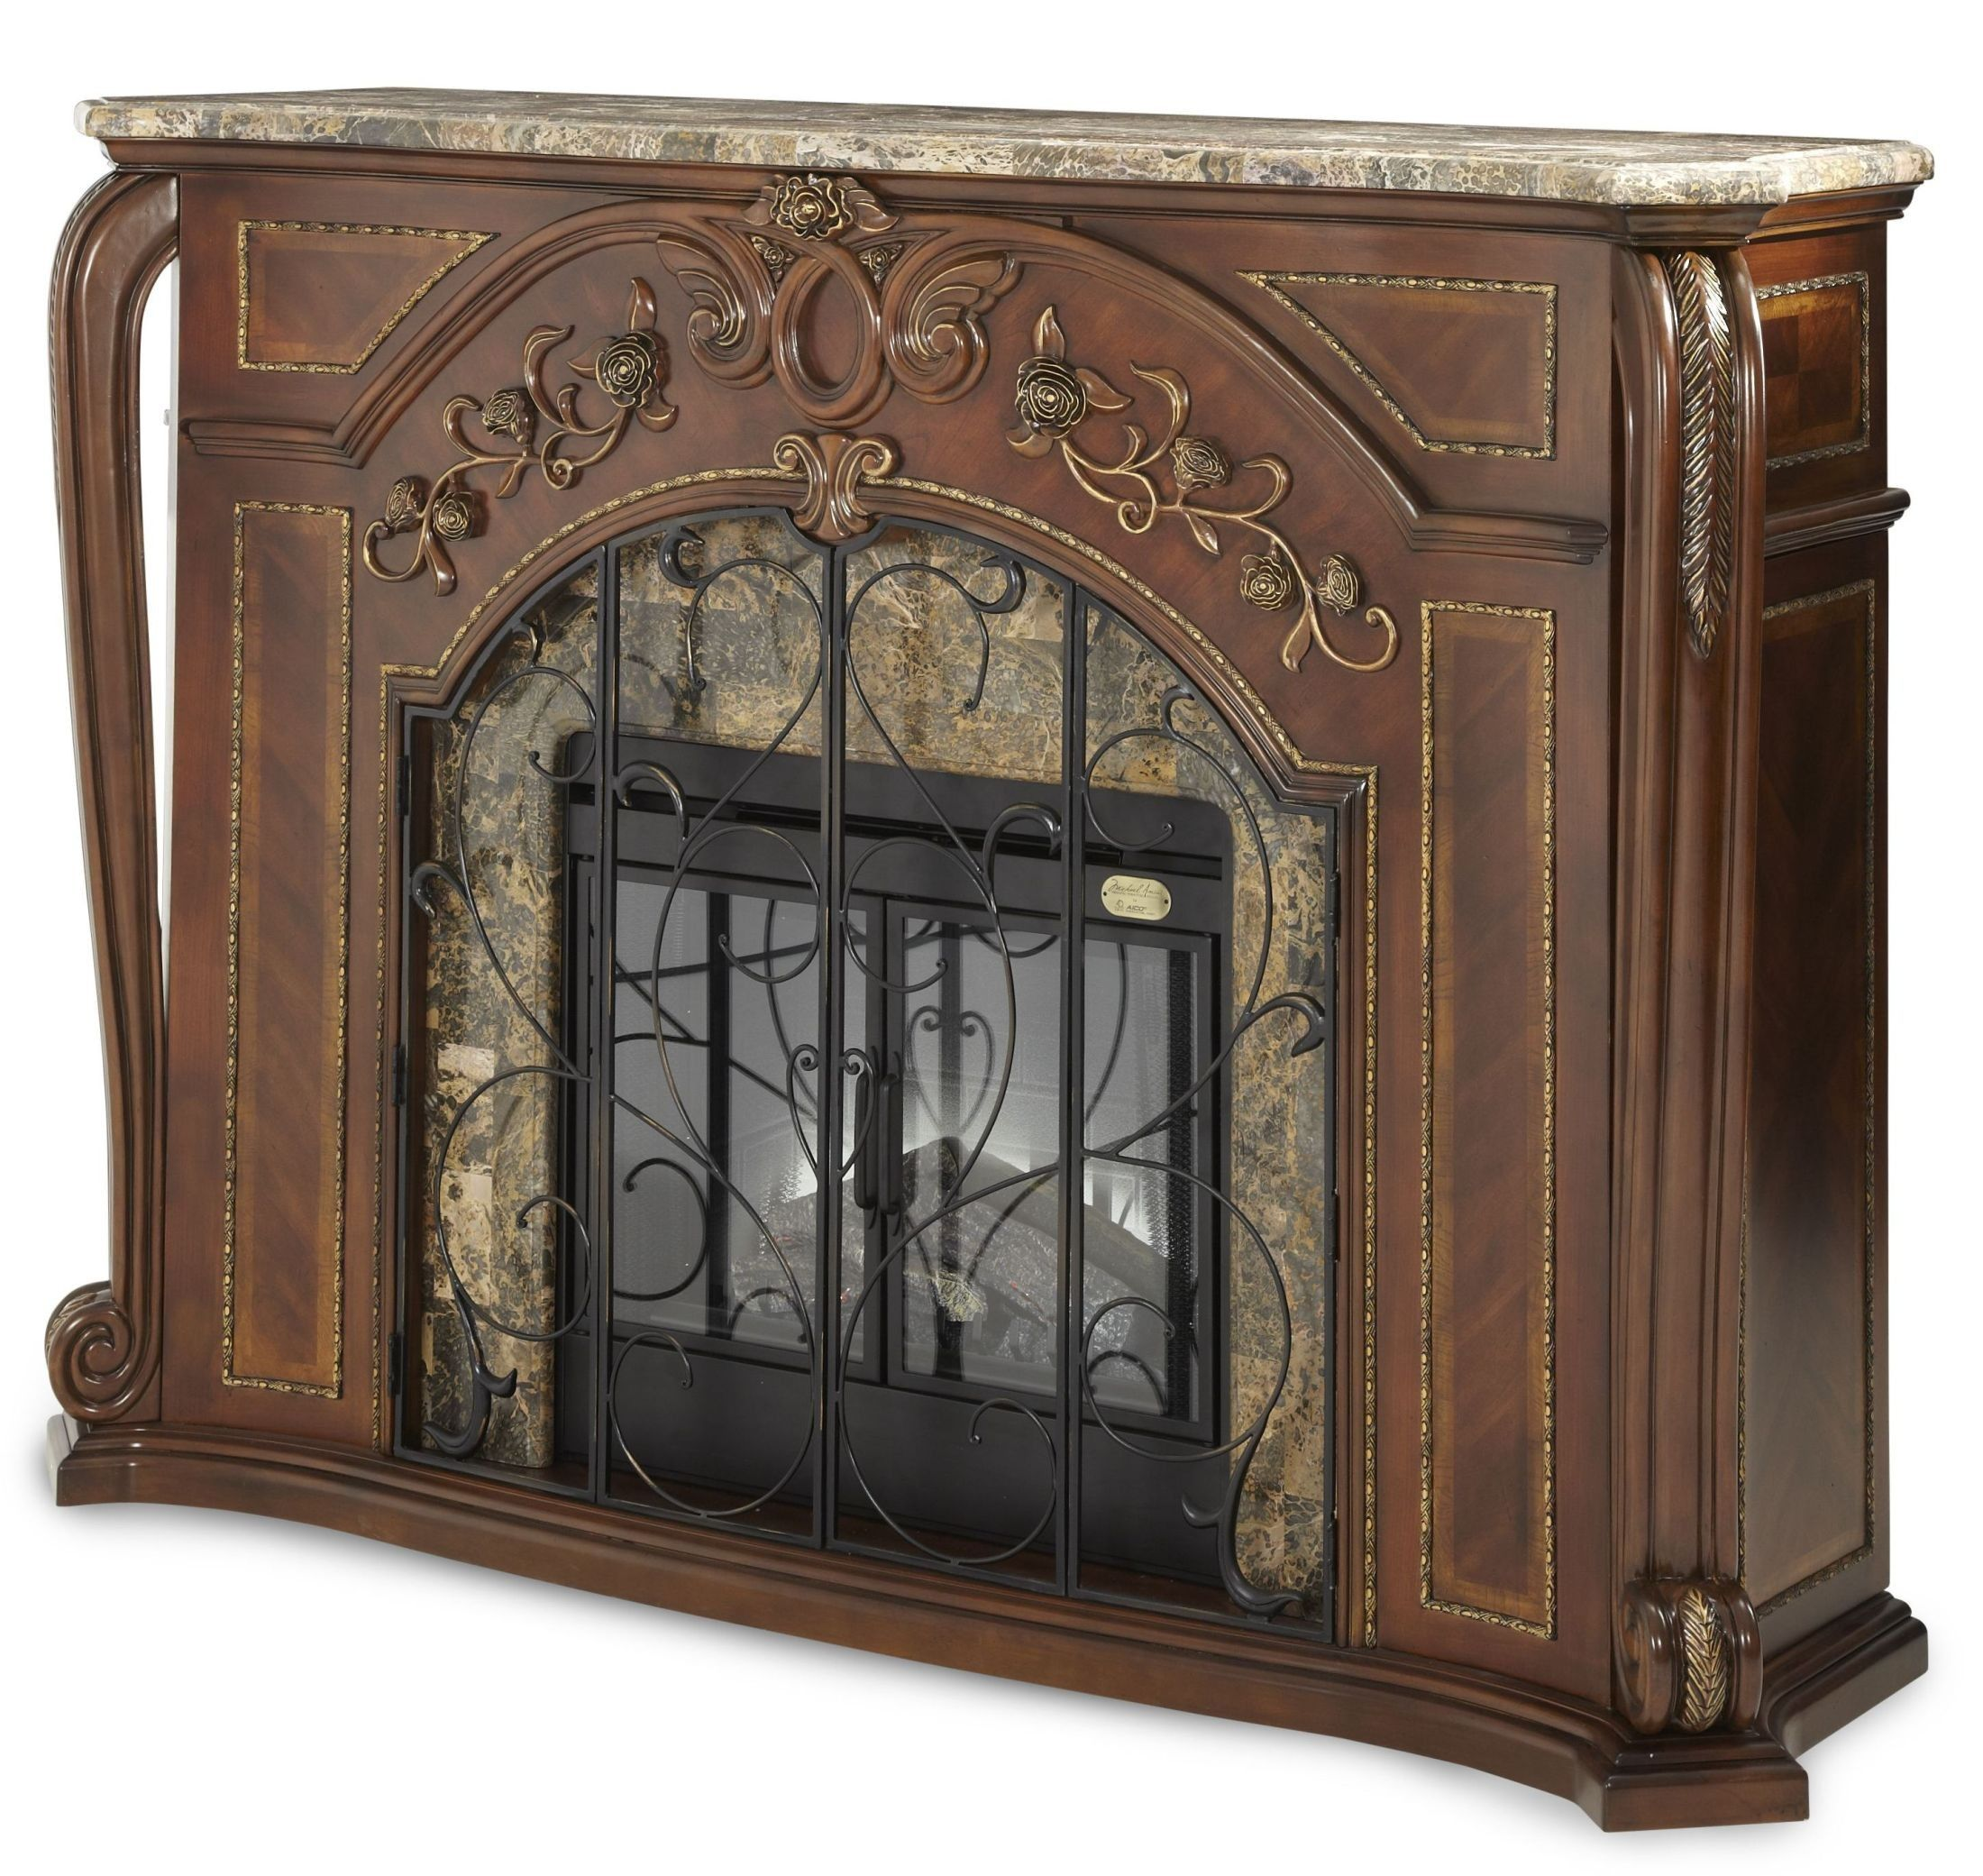 Oppulente Sienna Spice Marble Top Fireplace